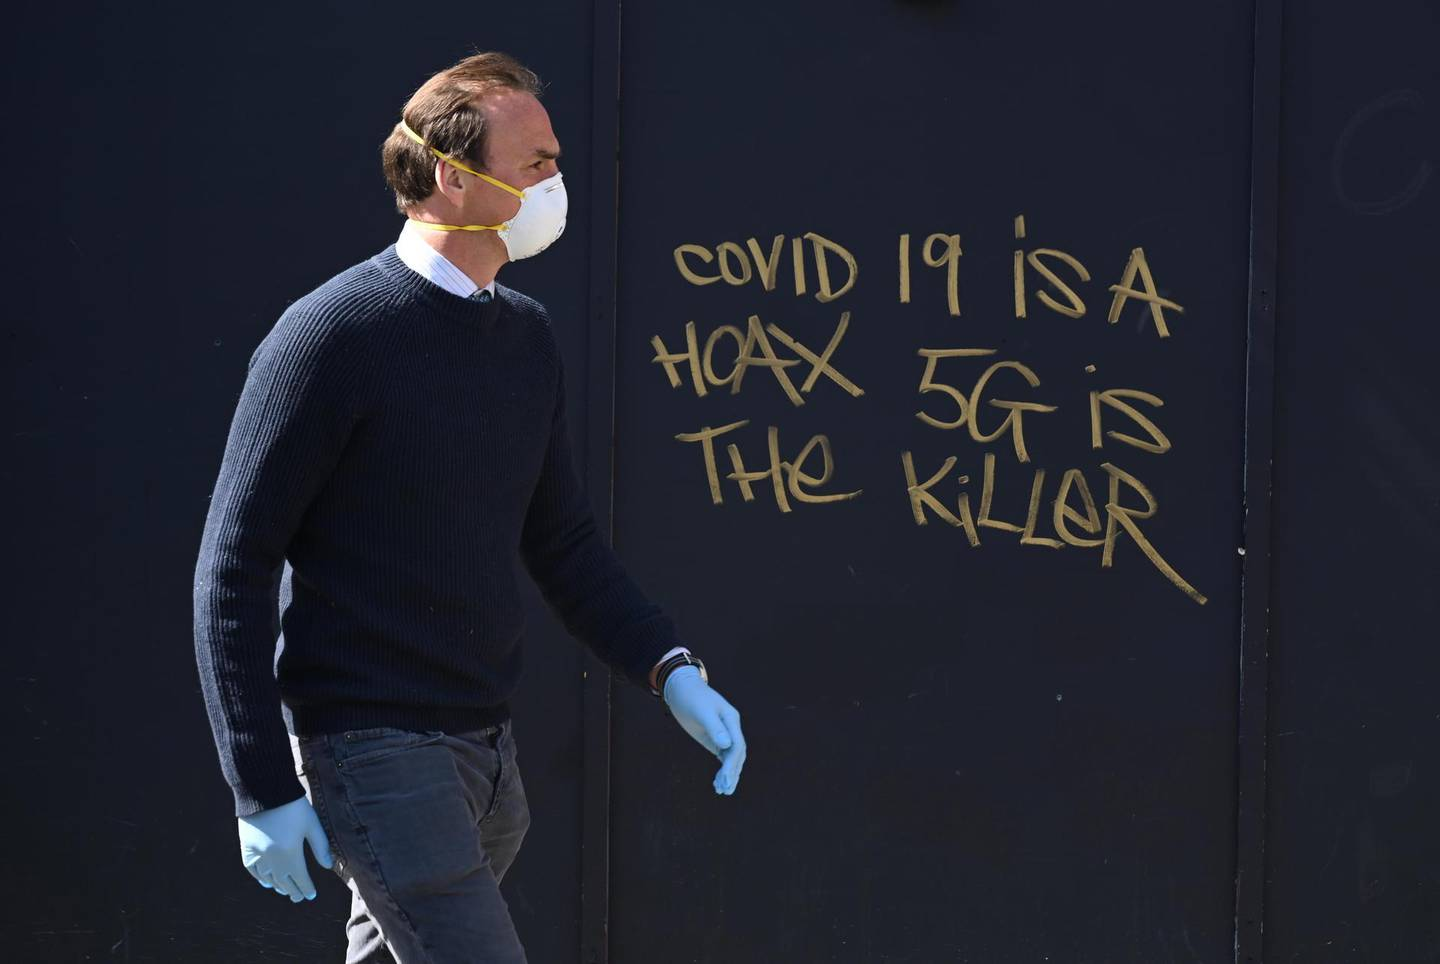 epa08362131 A man in a mask passes 5G conspiracy graffiti in London, Britain, 14 April 2020. A number of social media accounts are creating conspiracy theories about links between 5G technology and coronavirus. Countries around the world are taking increased measures to stem the widespread of the SARS-CoV-2 coronavirus which causes the Covid-19 disease.  EPA/NEIL HALL